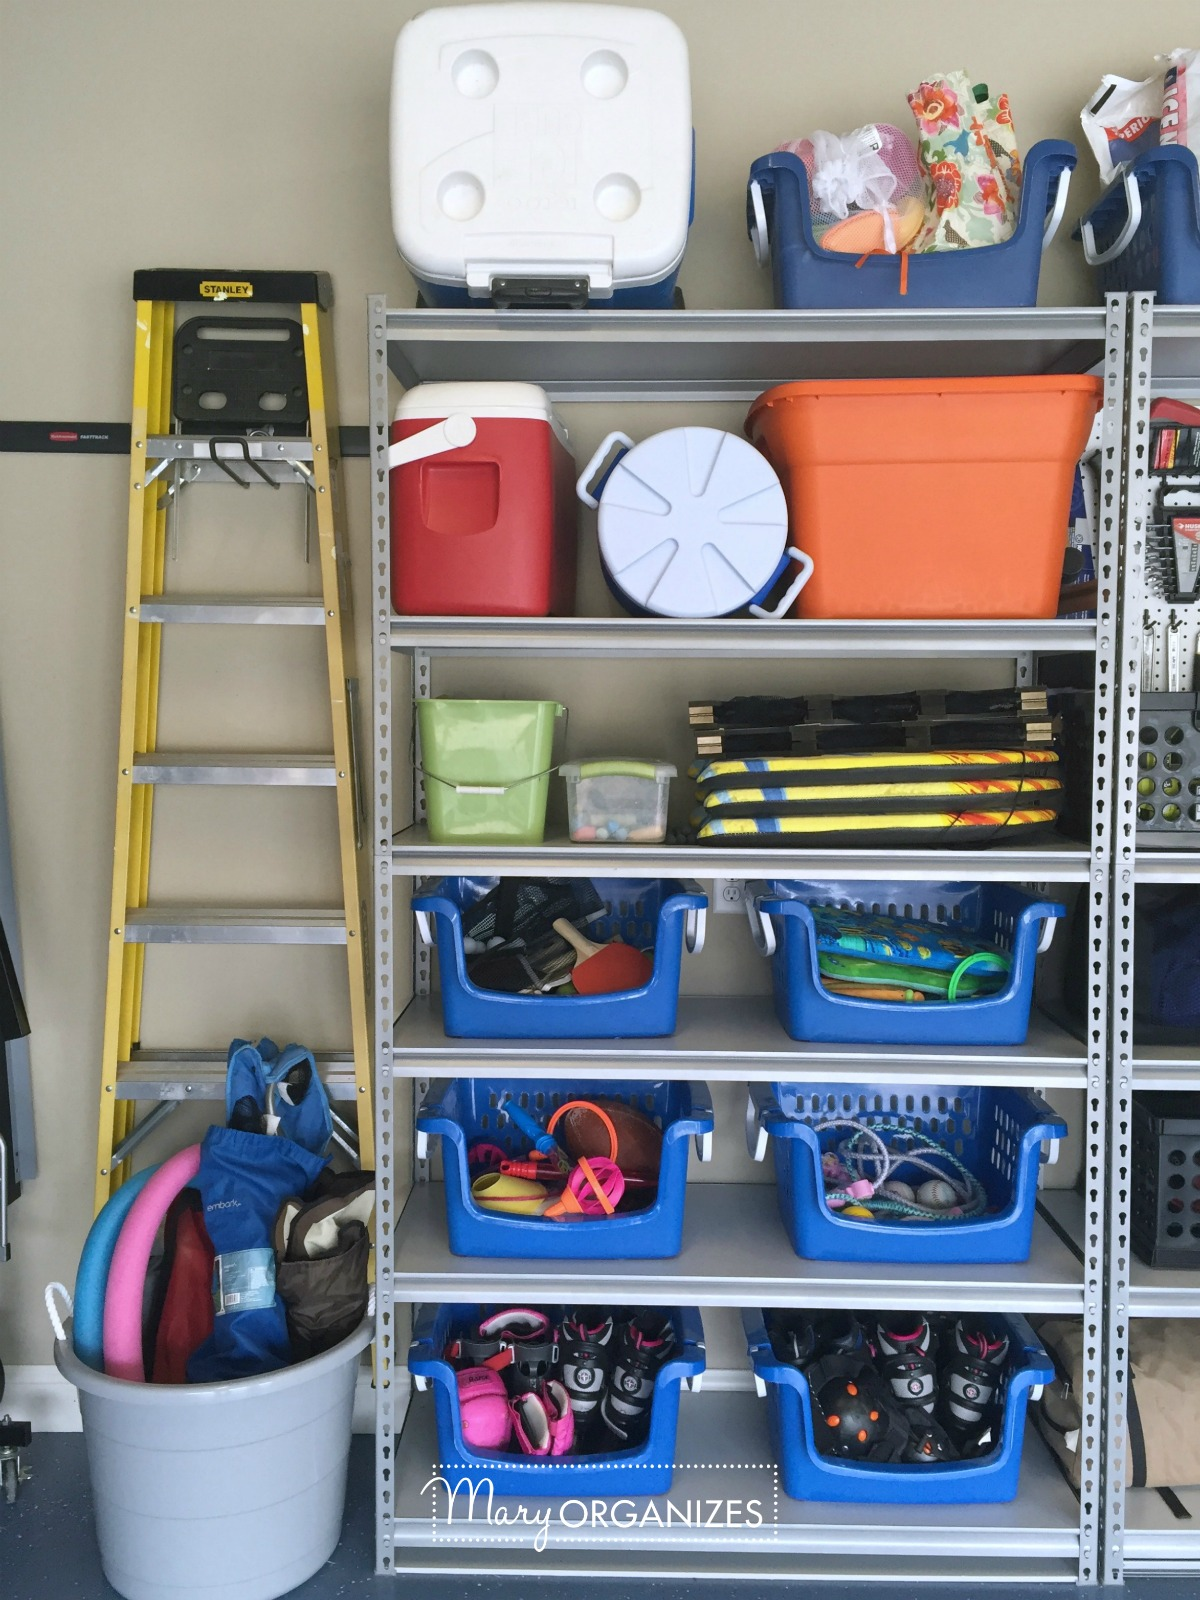 Pegboard Hack and Organizing Garage Shelves 6